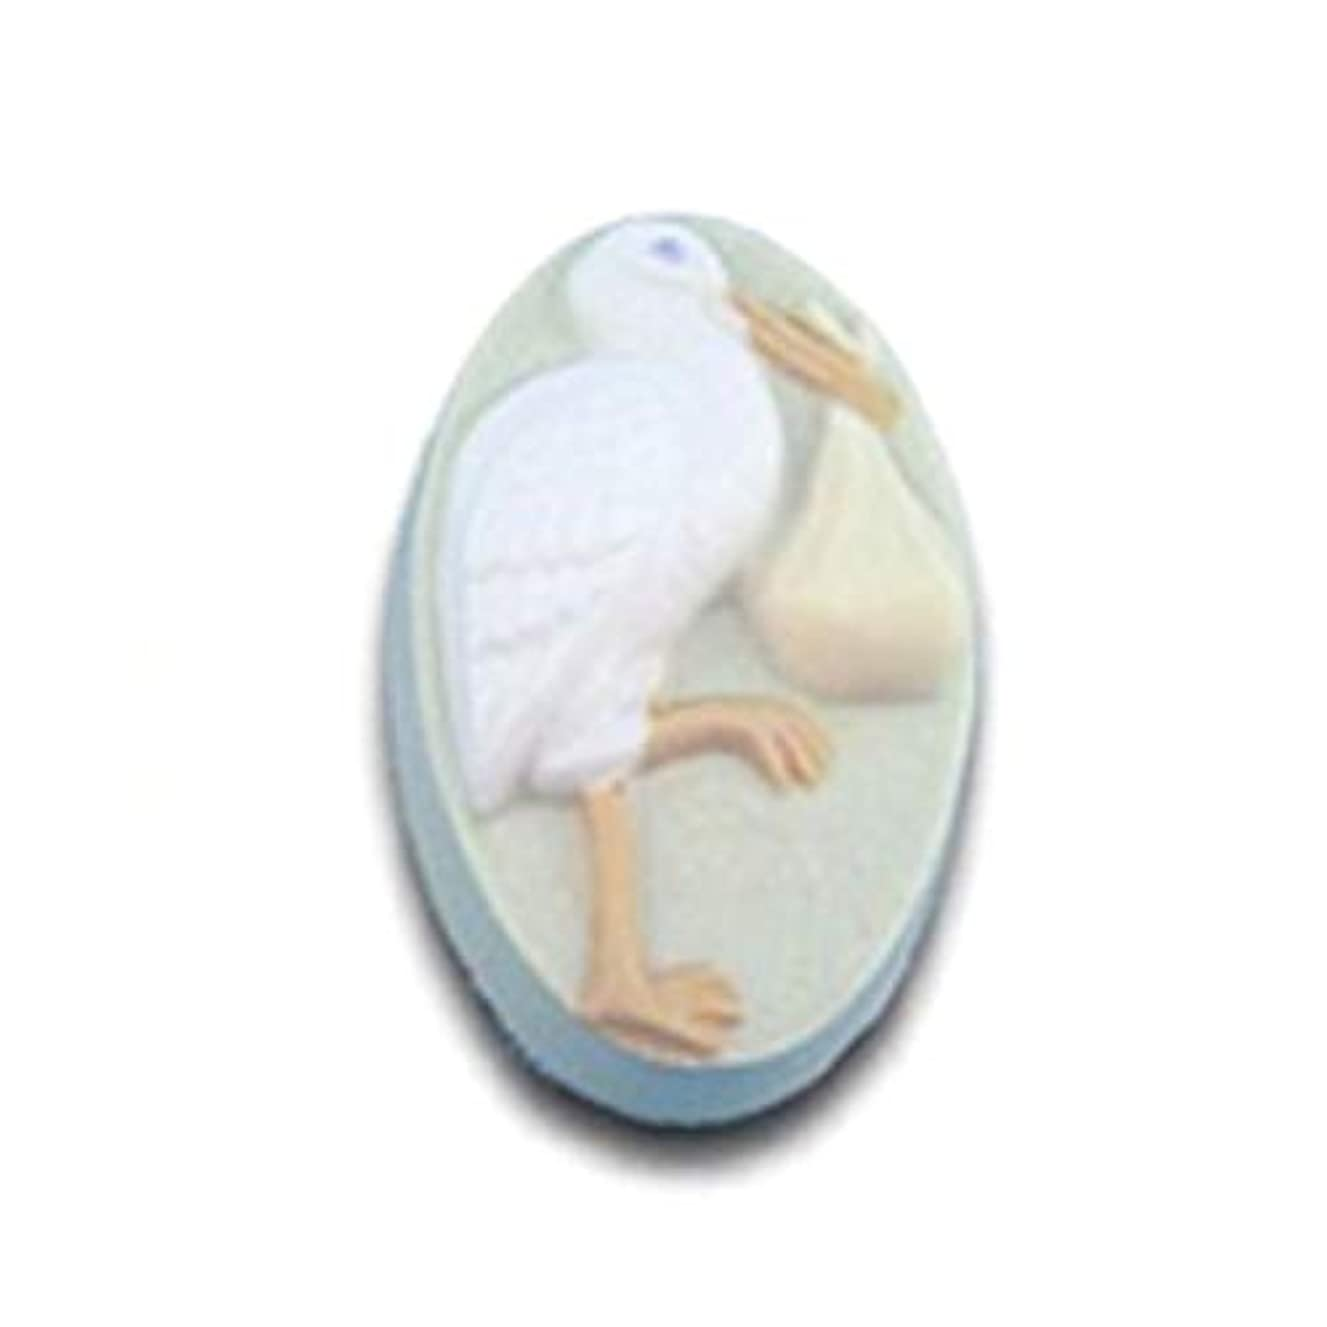 Stork with Bundle Soap Mold by Milky Way - Clear PVC - Not Silicone - MW511